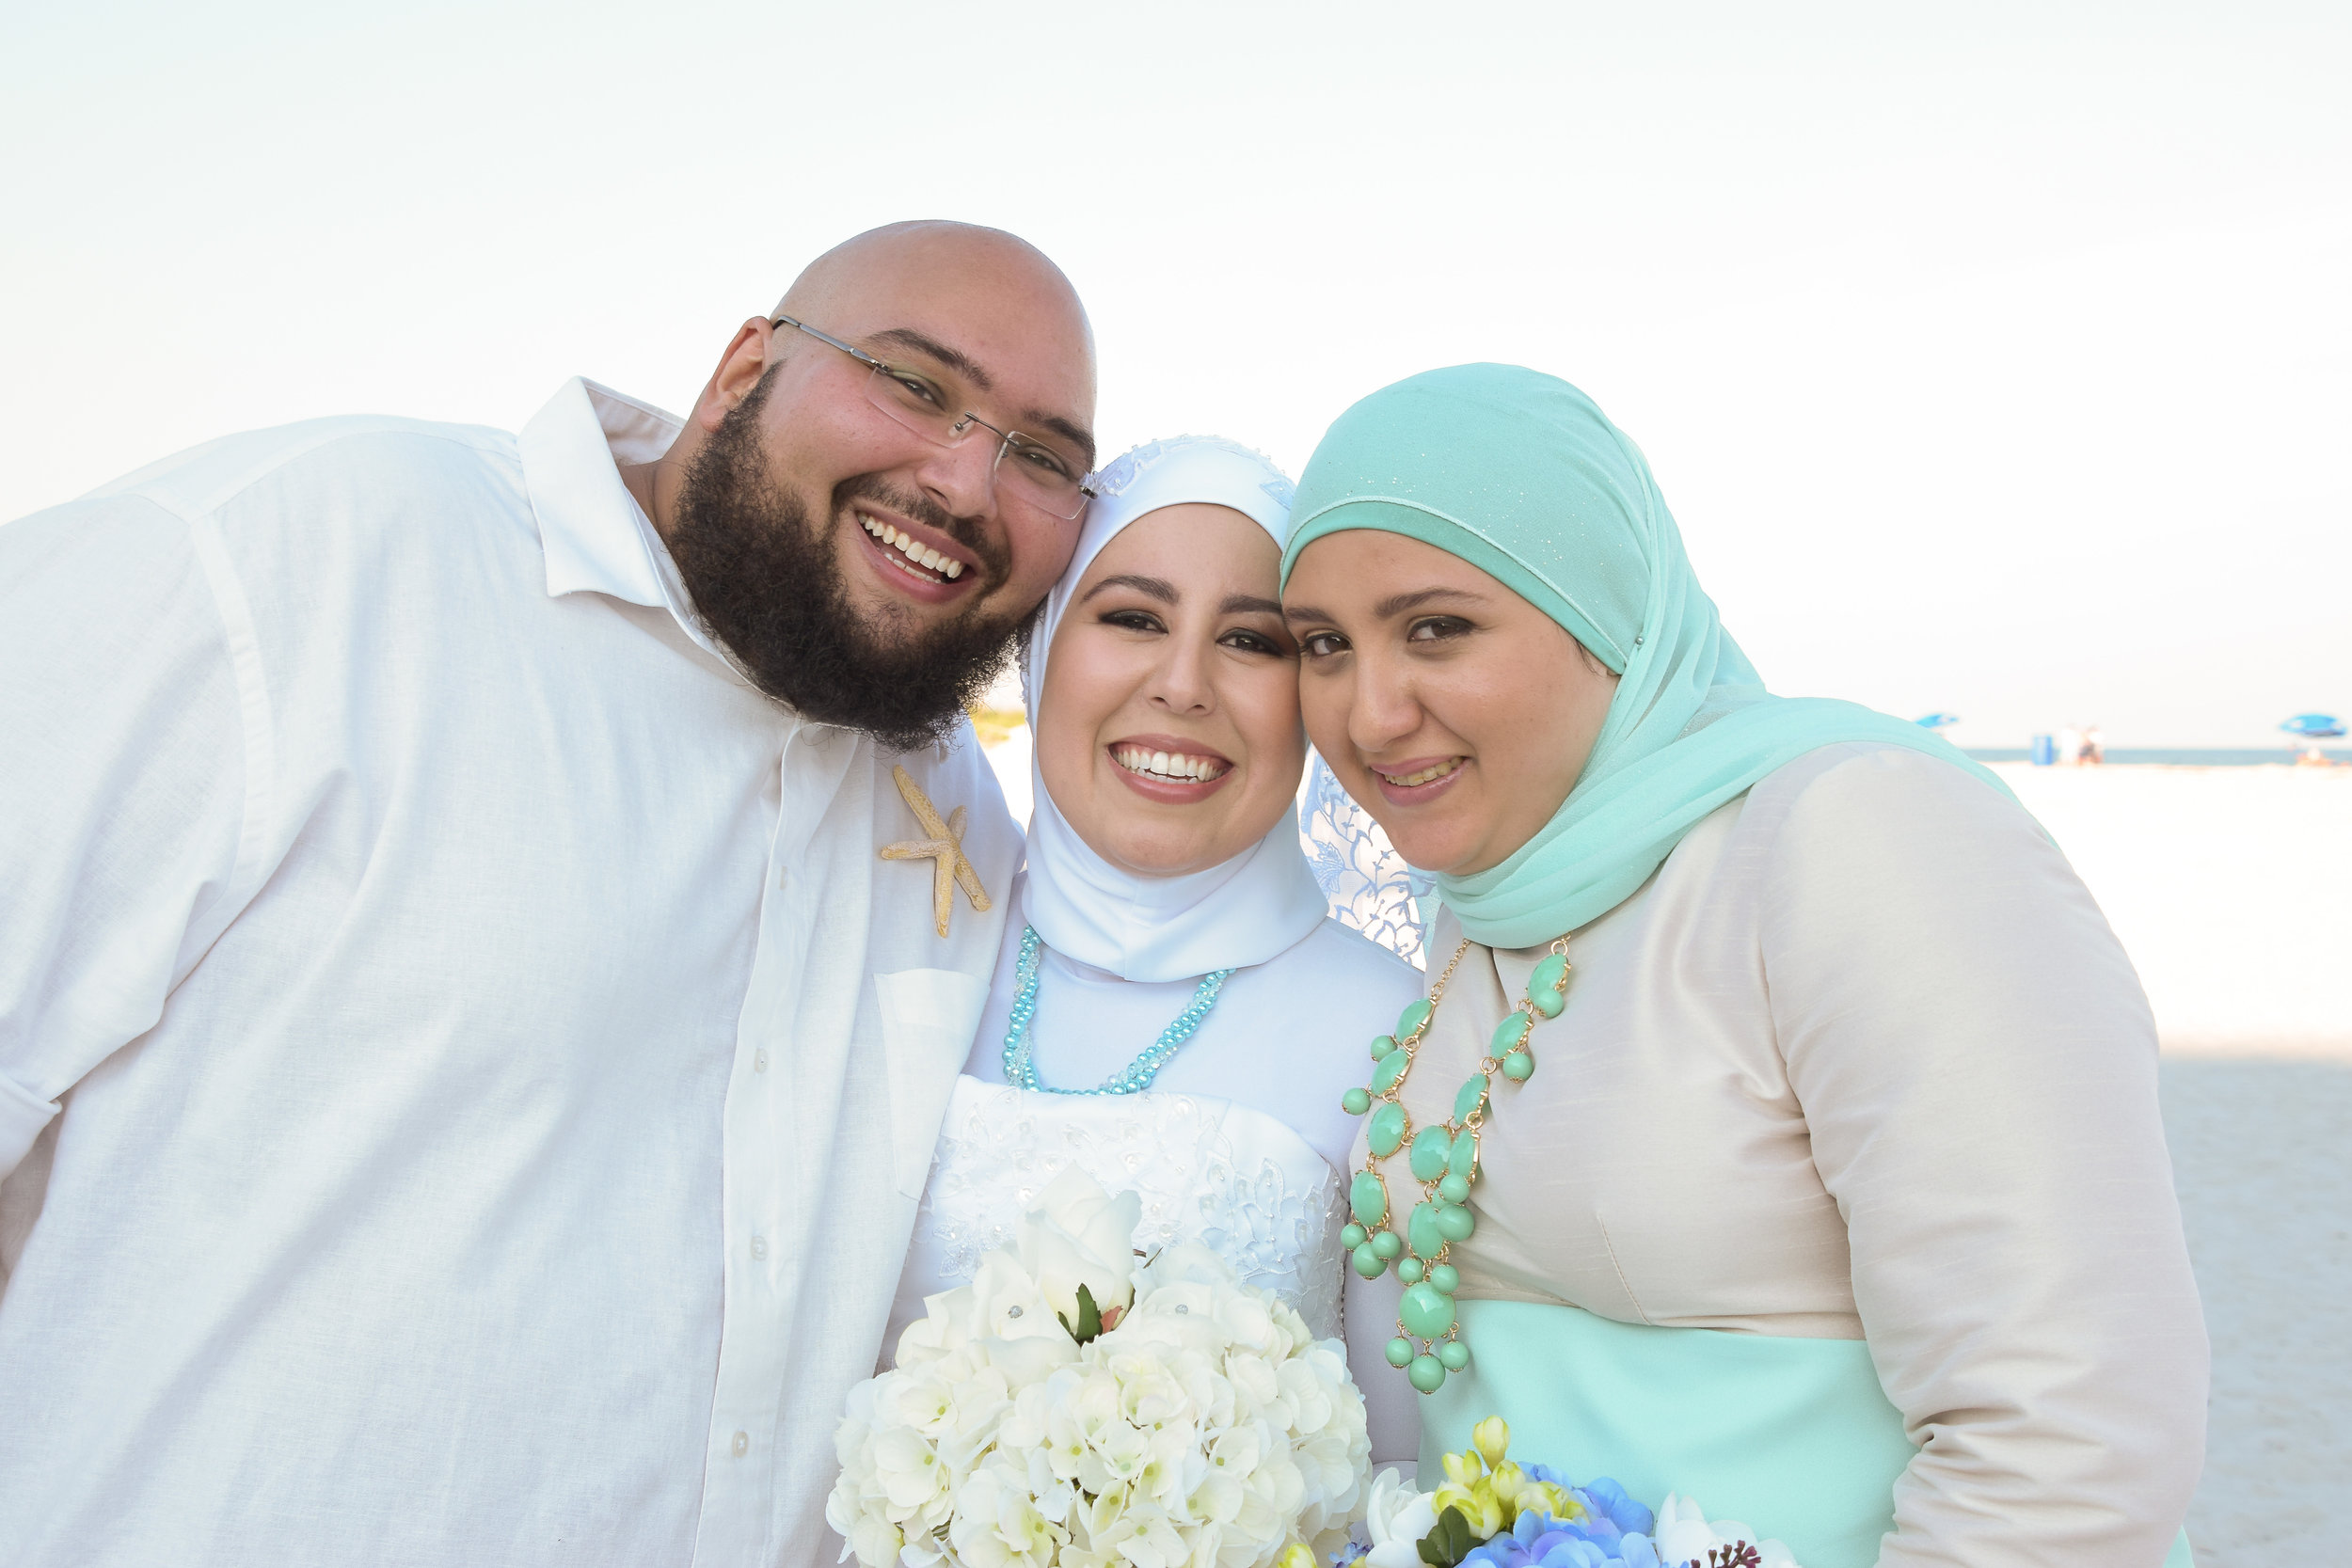 Bride posing with brother and sister.